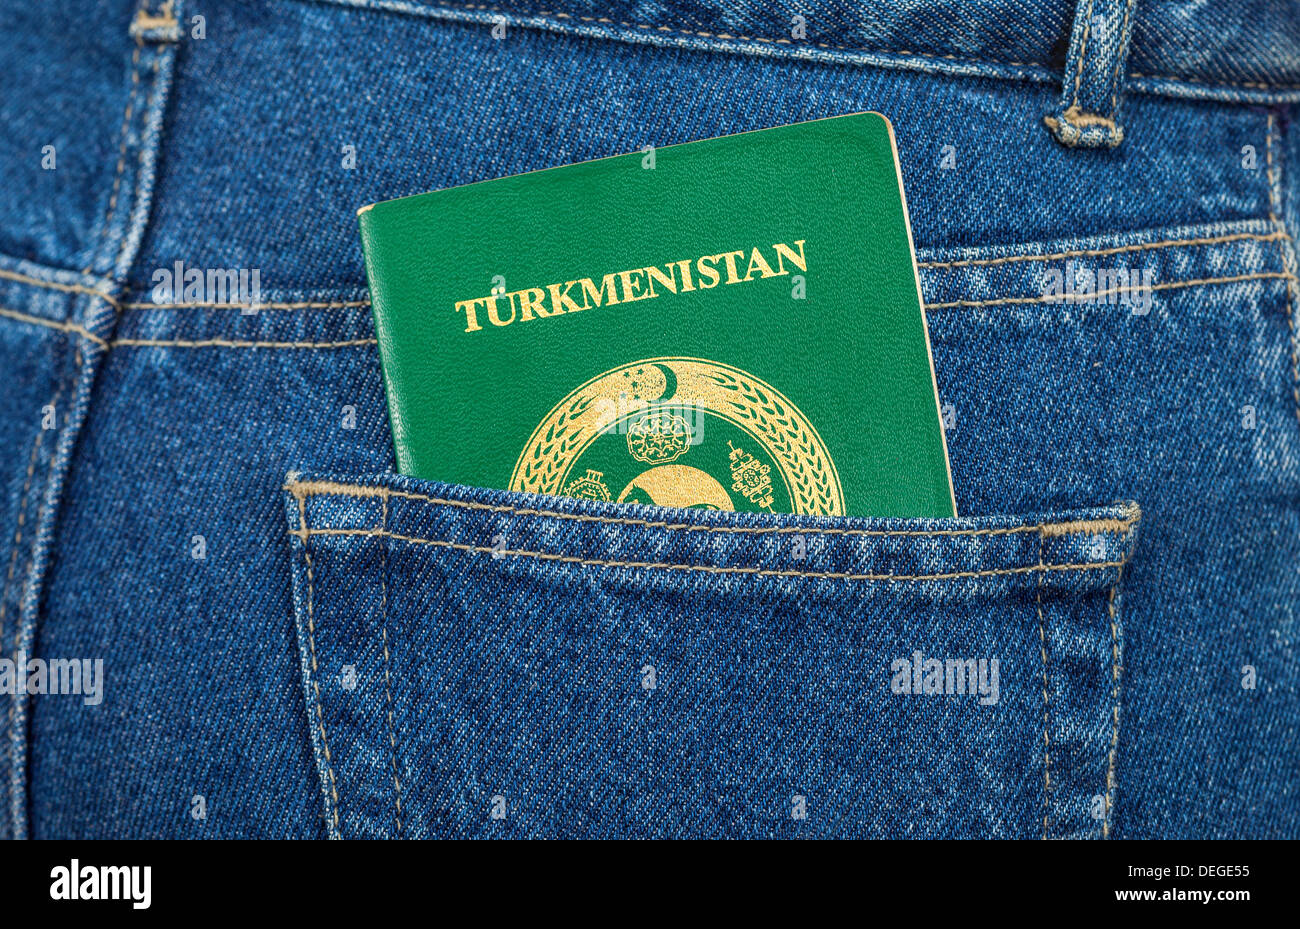 Turkmenistan passport in the back jeans pocket - Stock Image